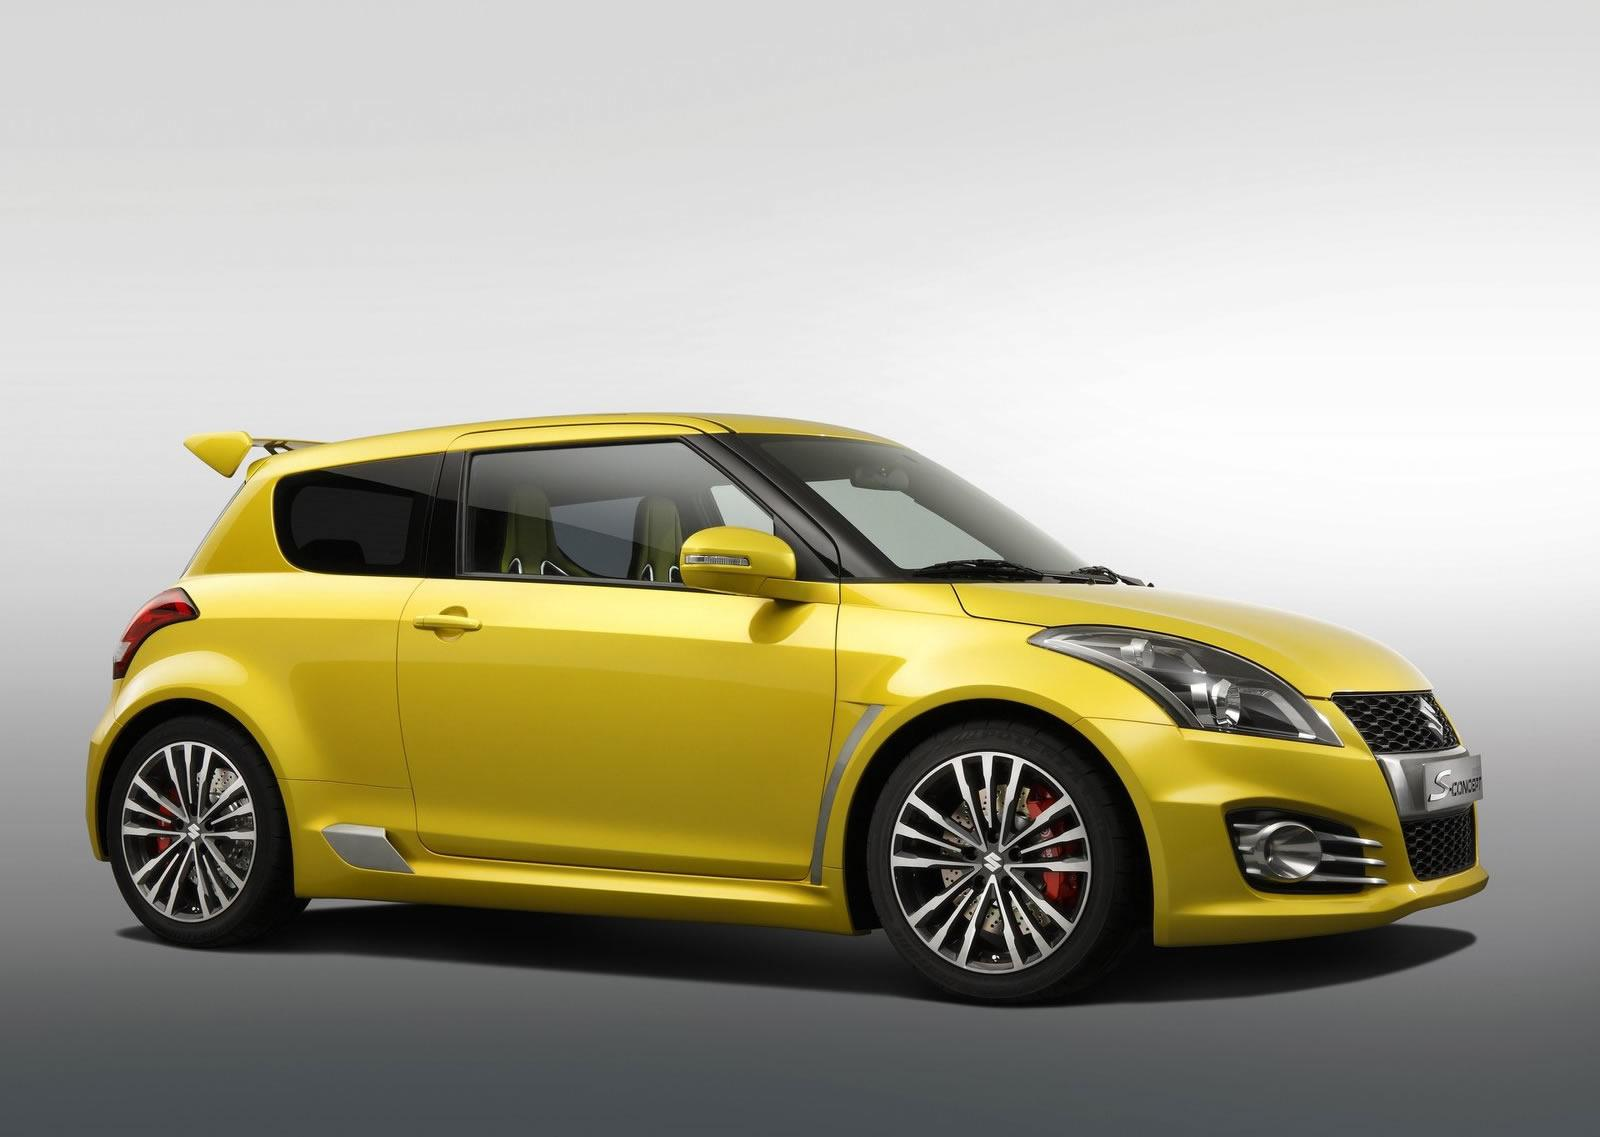 2012 Suzuki Swift Sport 3 Suzuki Swift Sport looks ready to take the roads early 2012!